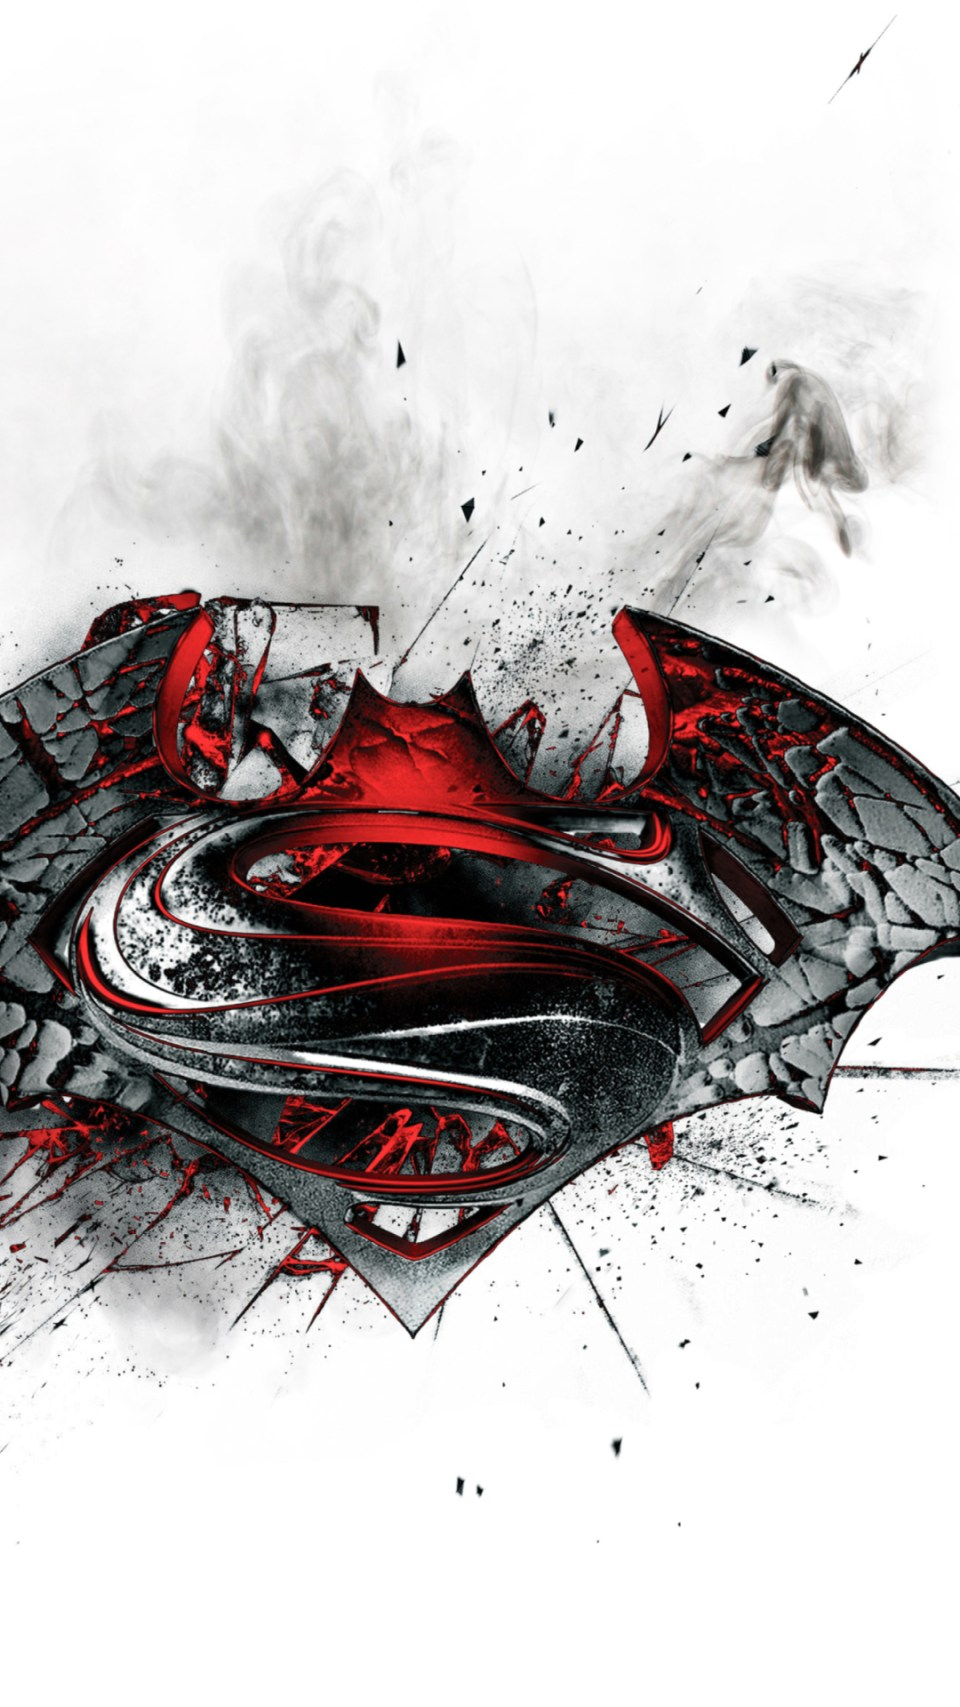 Superheroes HD Wallpaper Collection For iPhone 6 and iPhone 6 Plus